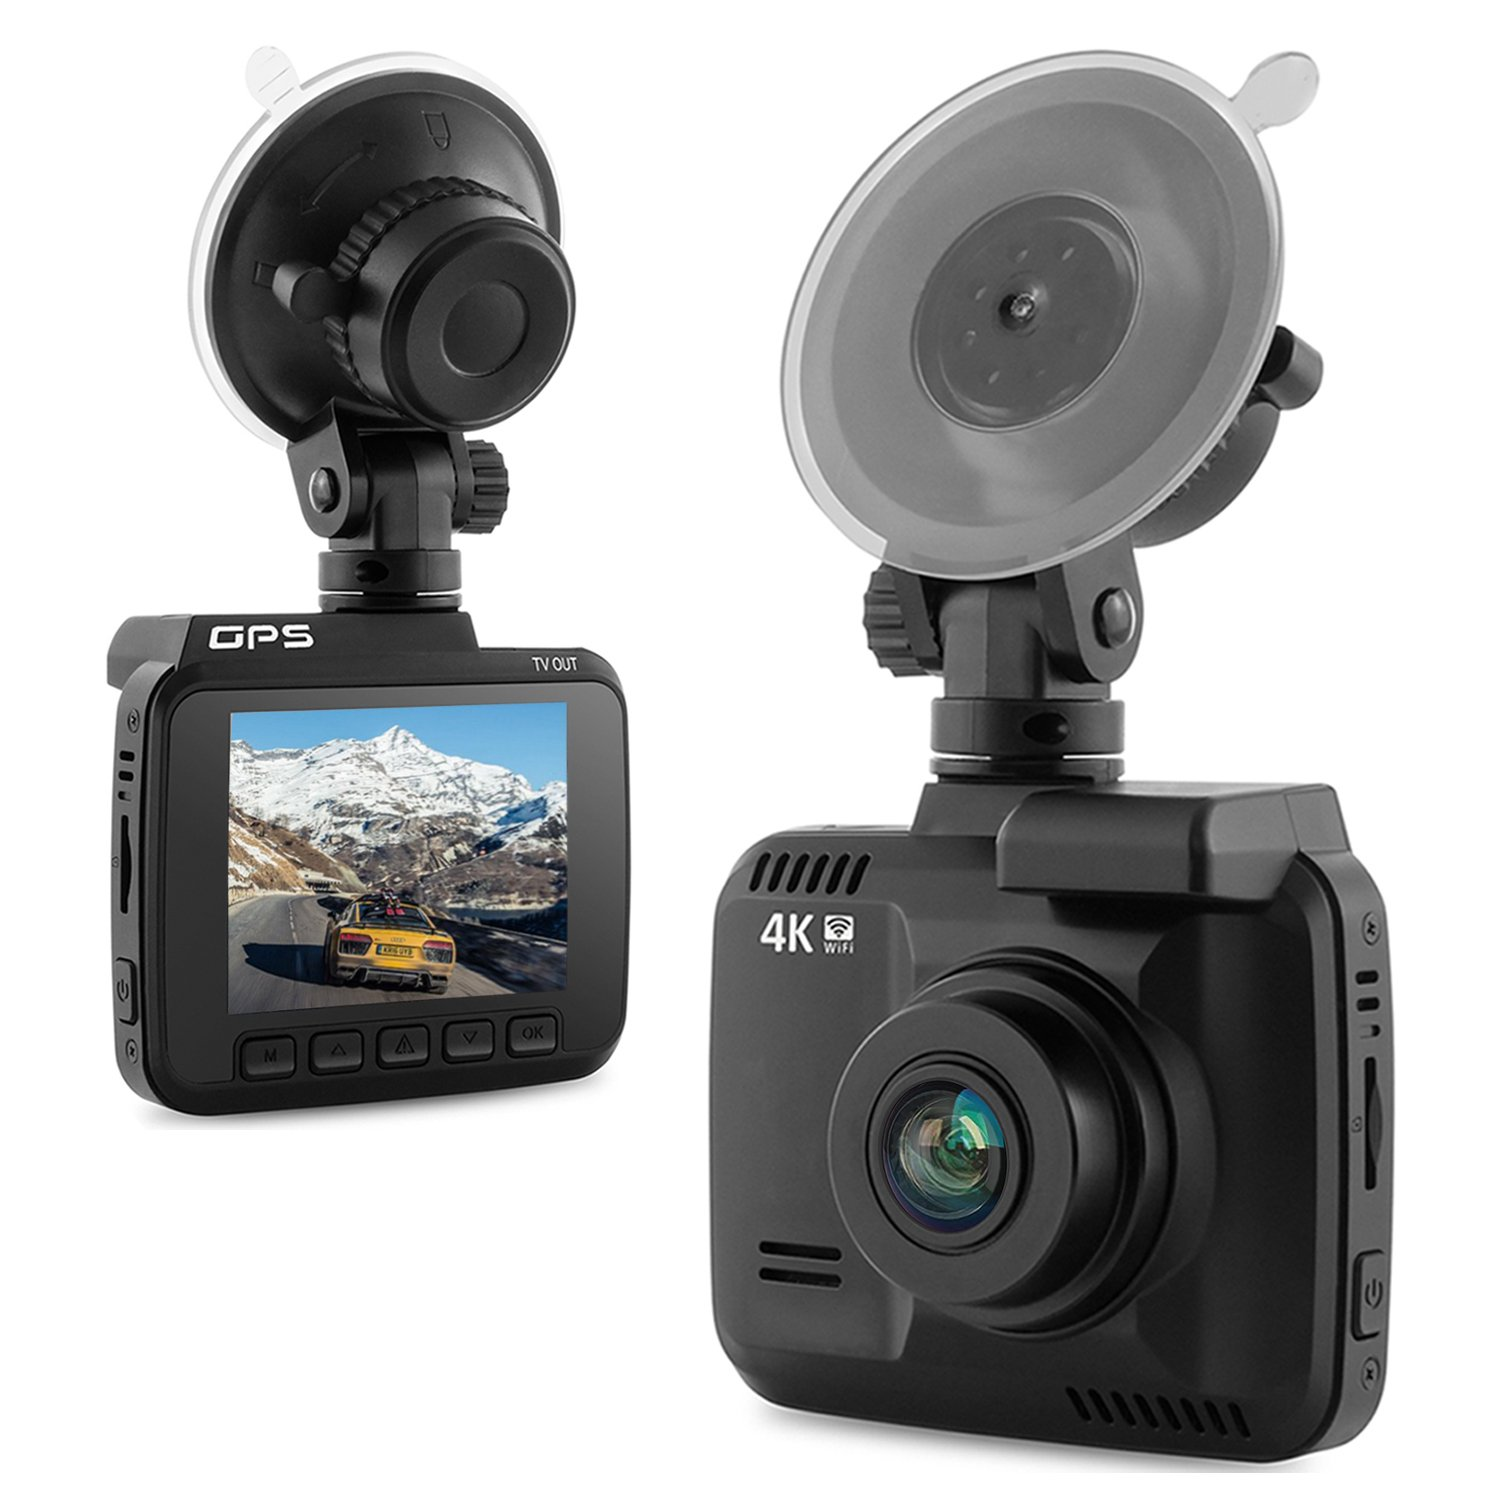 4K Ultra HD Car Dash Cam, 2.4'' Dash Camera, Built In WiFi and GPS, Support 150 Degree Wide Angle, G-Sensor, Loop Recording, Motion Detection, Parking Monitoring, etc